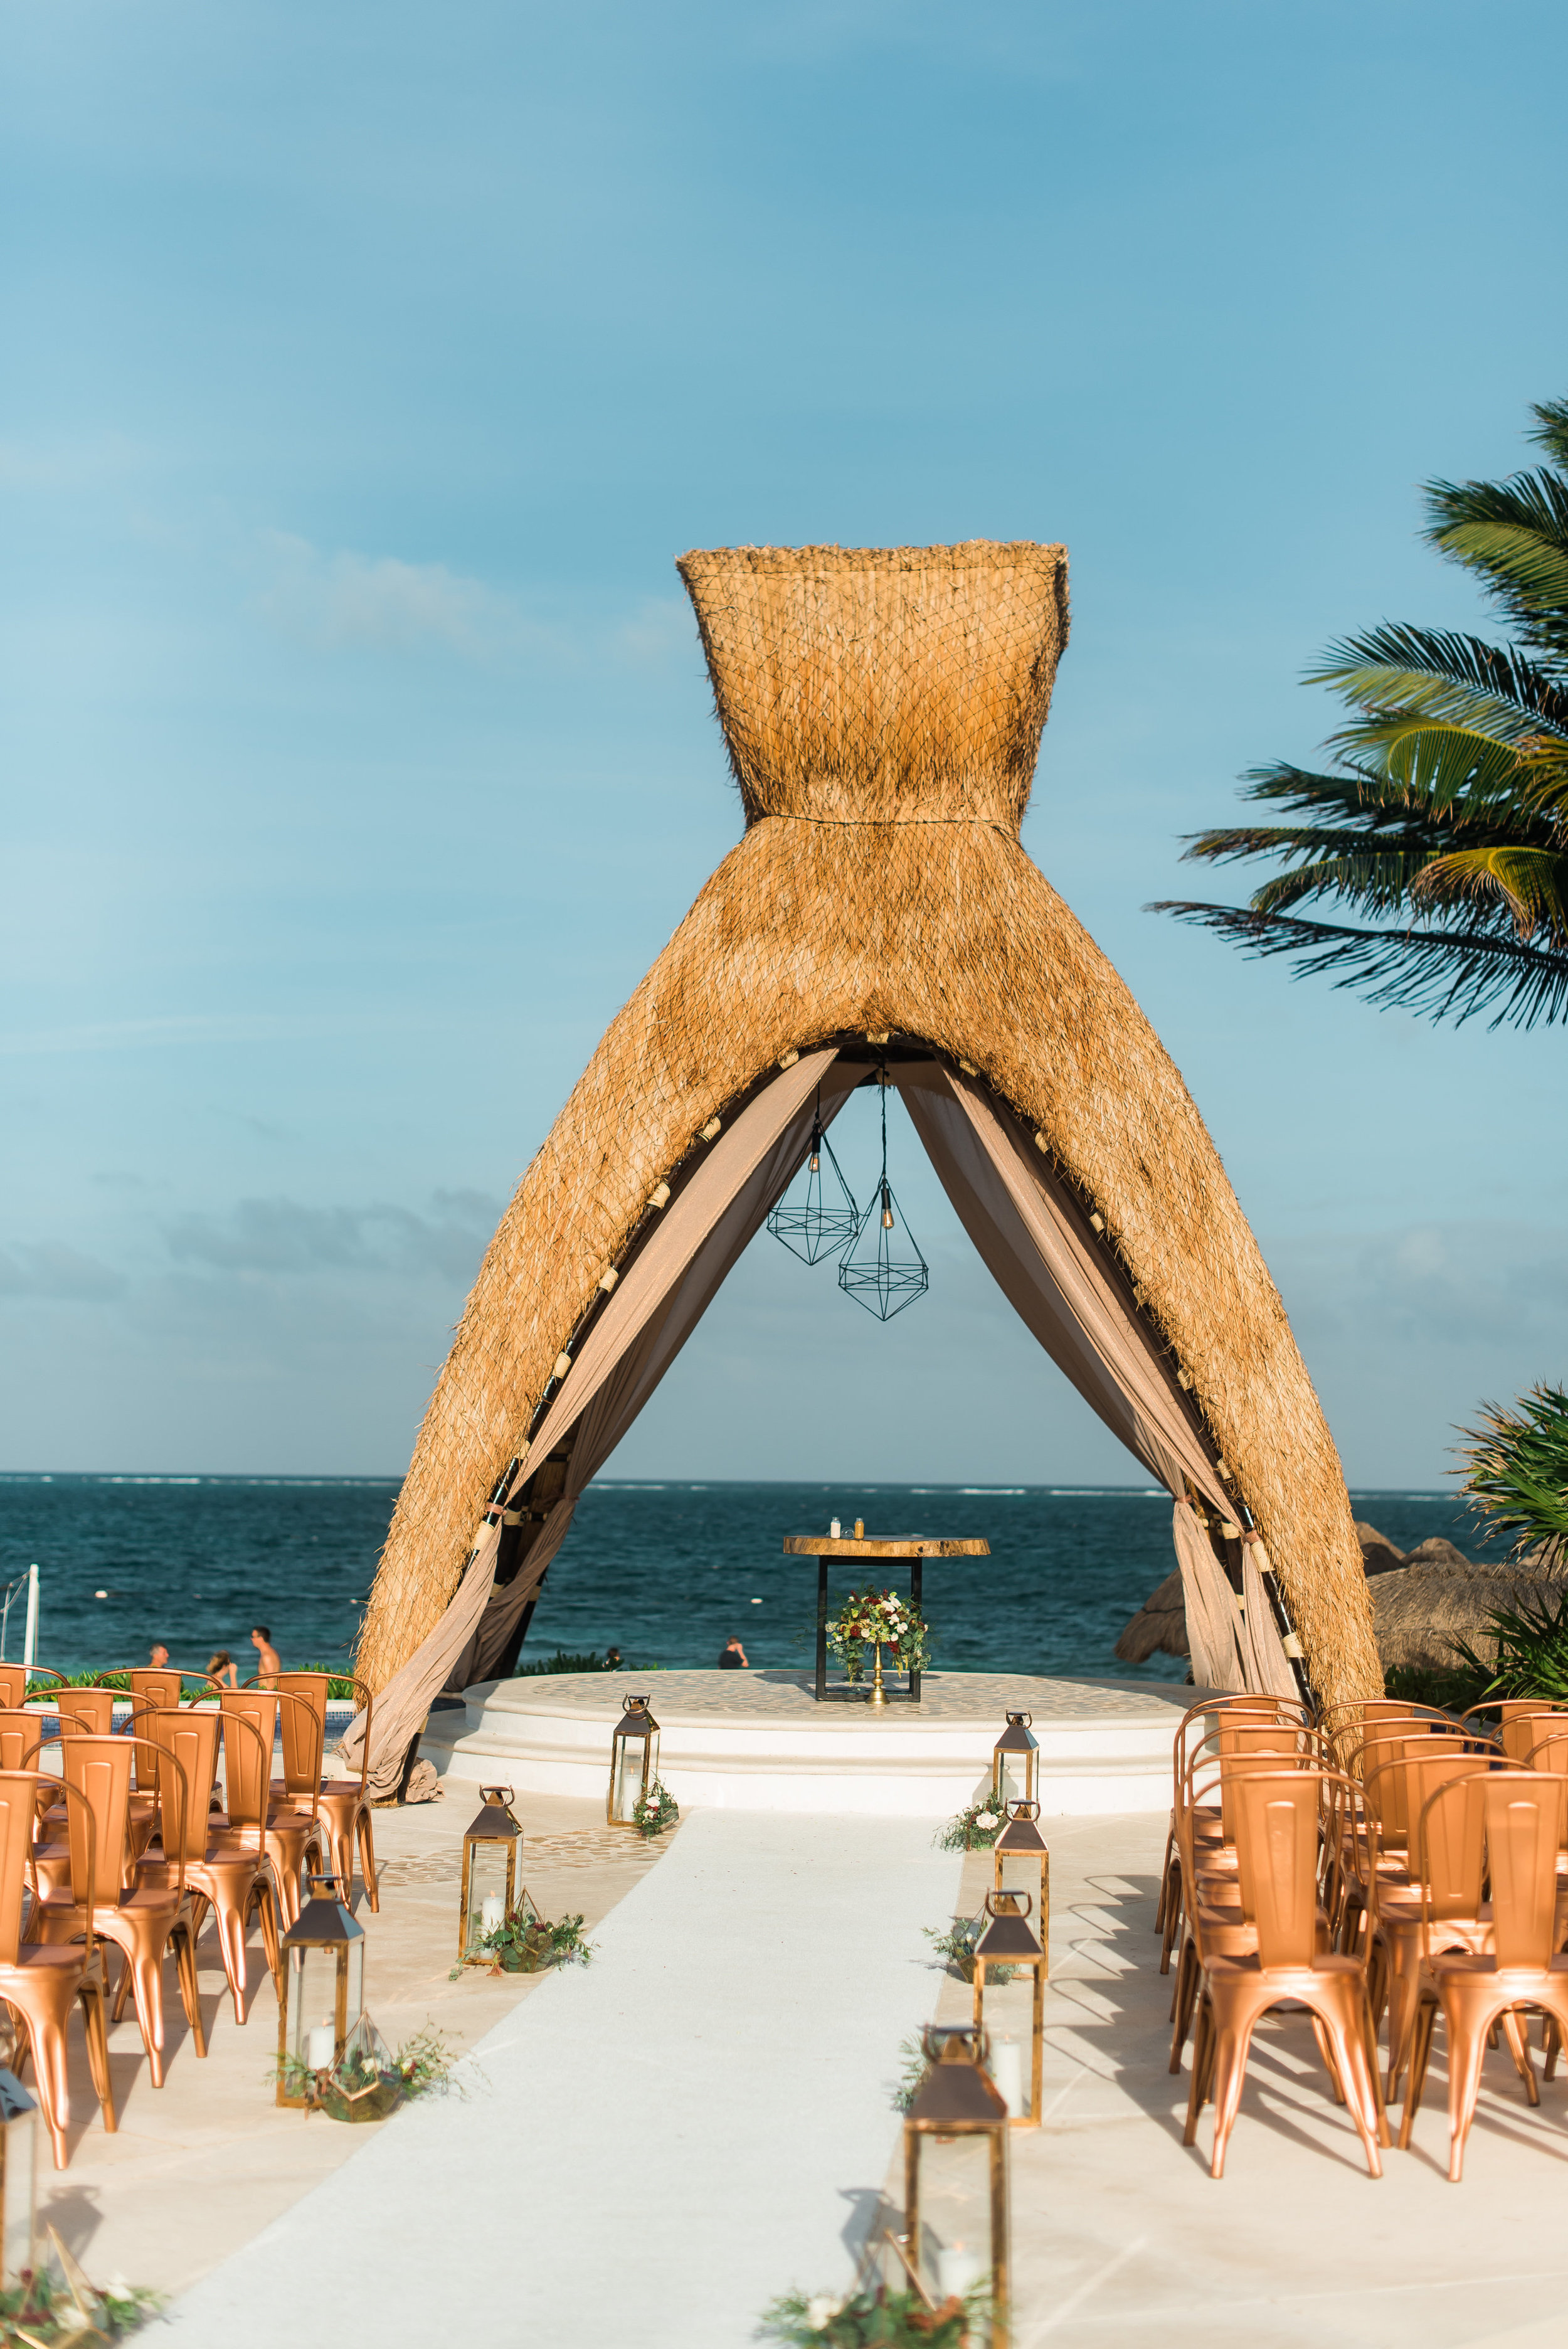 mexico-cancun-destination-wedding-boho-industrial-chic0230.jpg